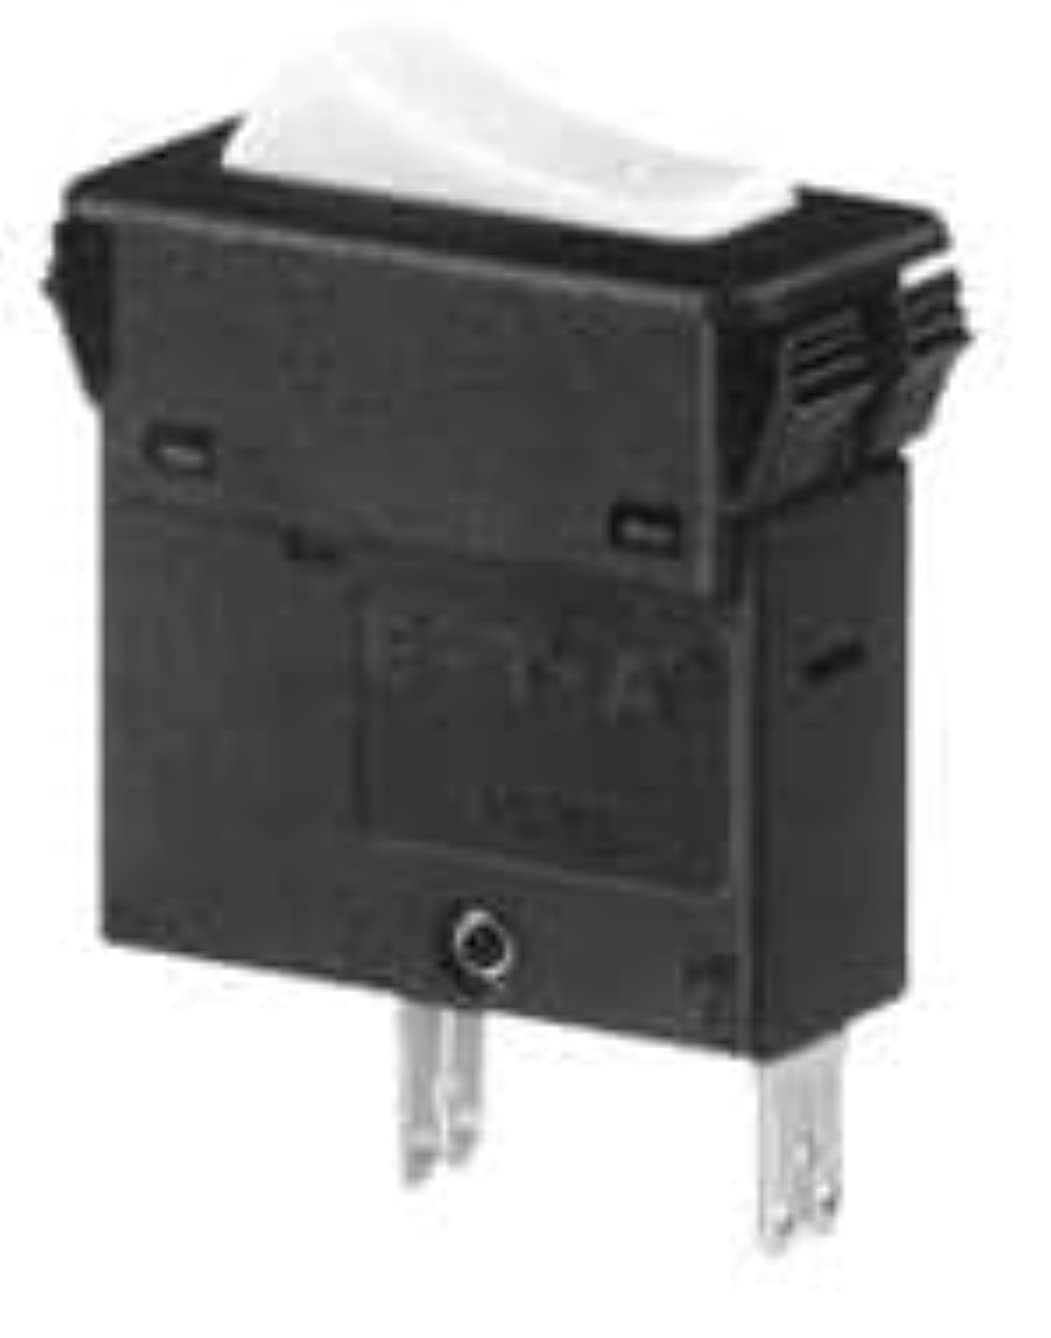 Circuit Breakers Thermal circuit breaker with rocker actuation, single, double or three pole (3130-F120-P7T1-W02Q-1A)